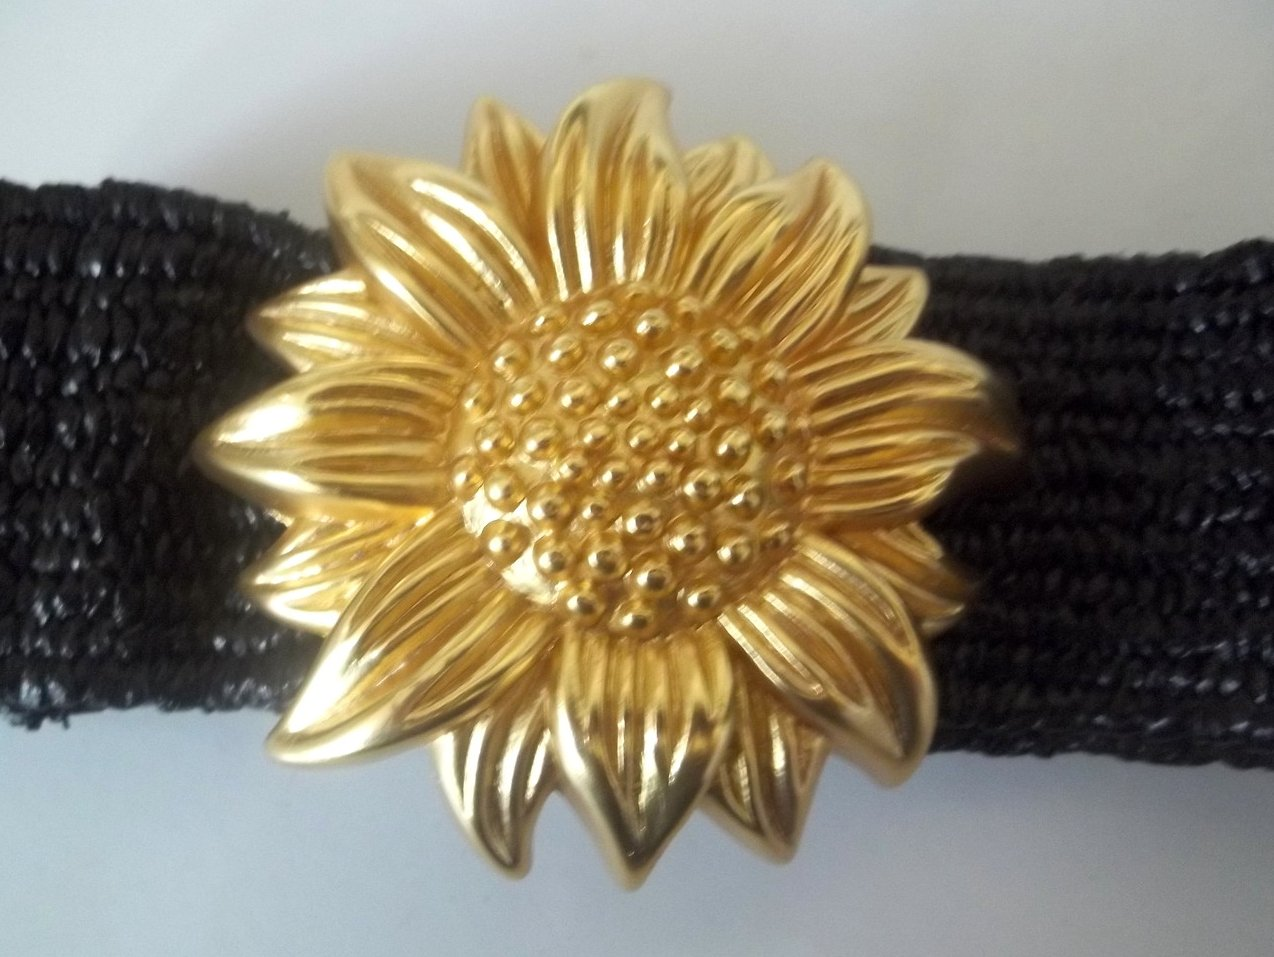 Vintage Ladies Fashion Belt Heavy Golden Sunflower Black 32 x 2